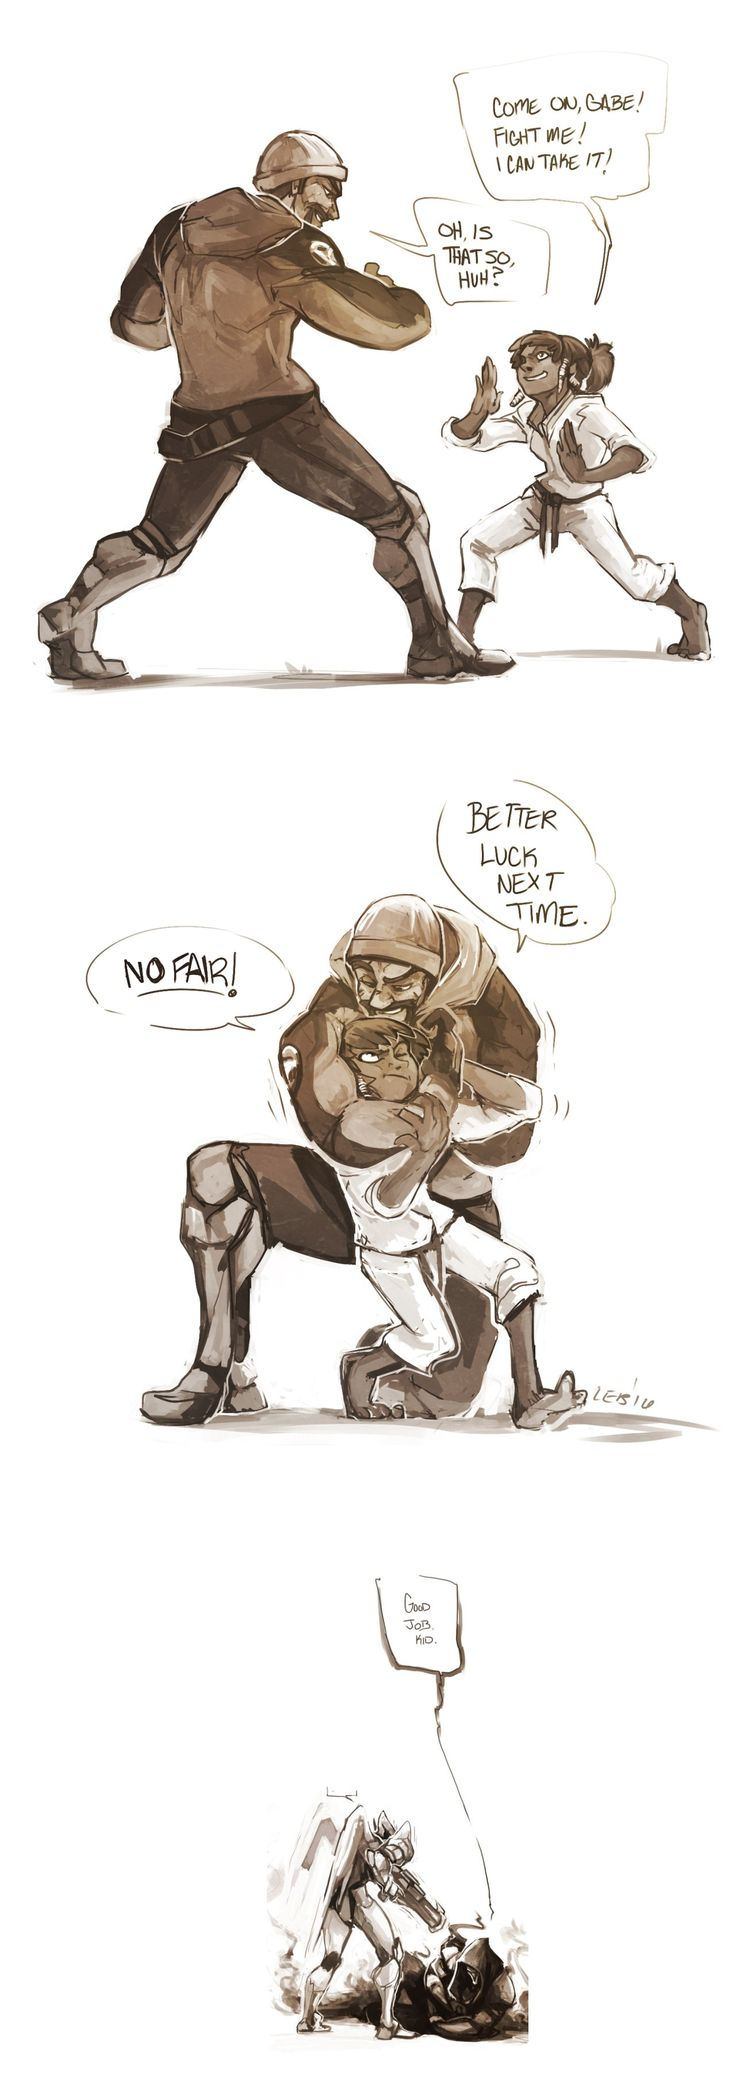 I actually really want to see what happened when reaper was normal